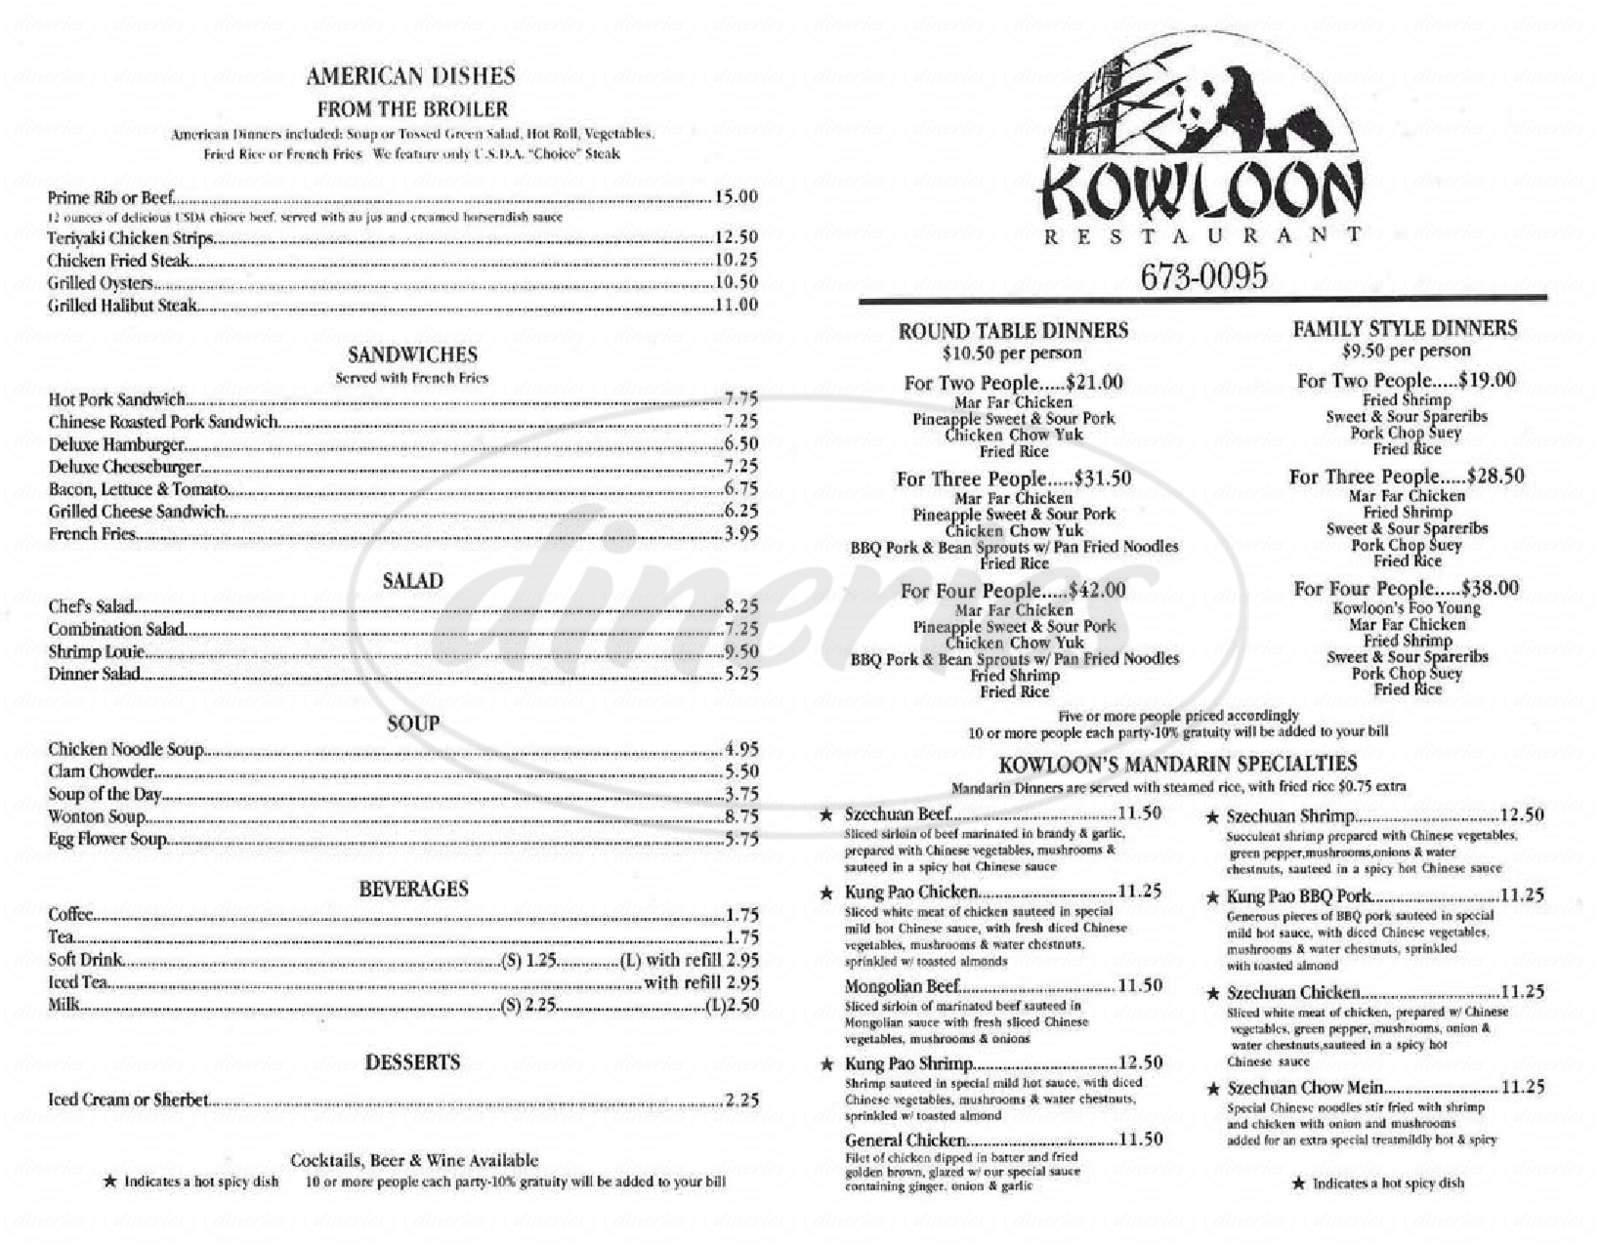 menu for Kowloon Restaurant